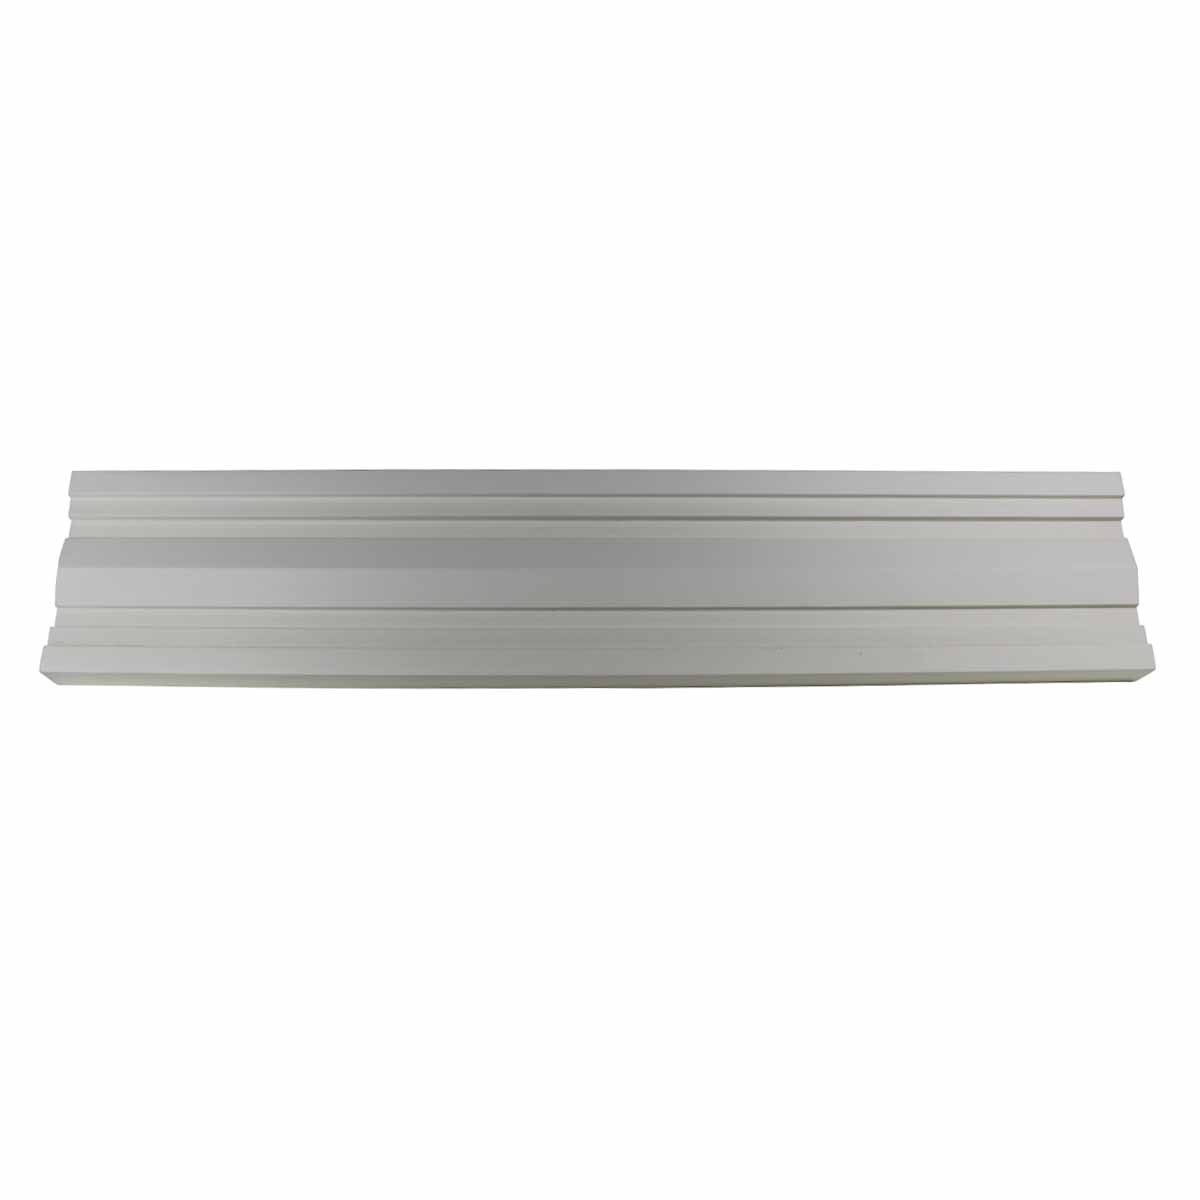 Cornice White Urethane Sample of 11527 24 Long Cornice Cornice Moulding Cornice Molding